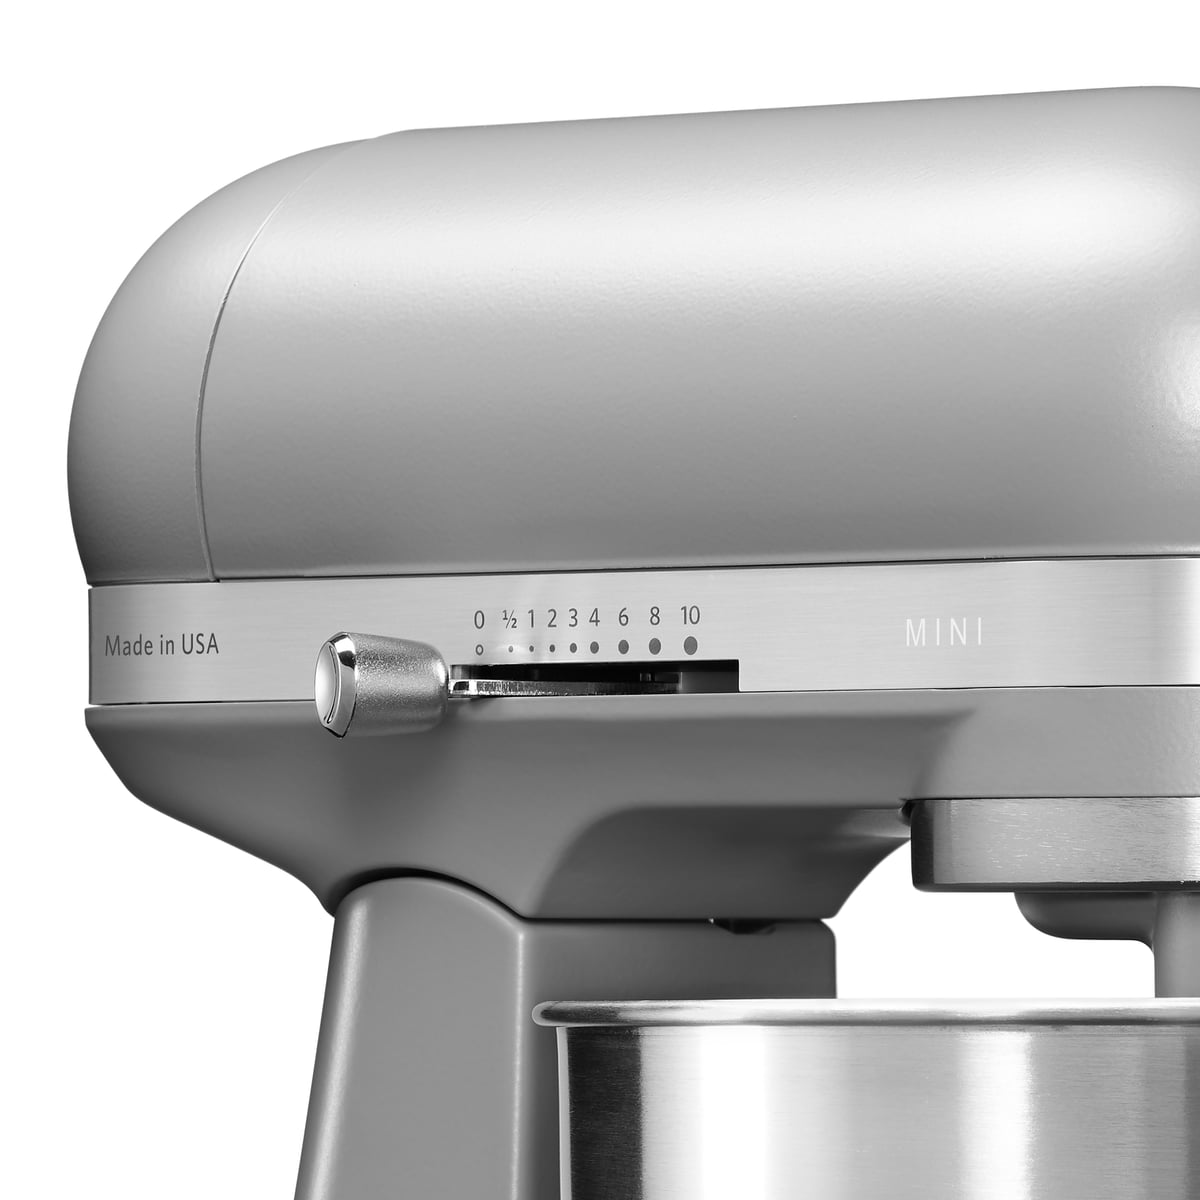 Mini Kitchen Appliance 3.3 L By KitchenAid In Matte Grey